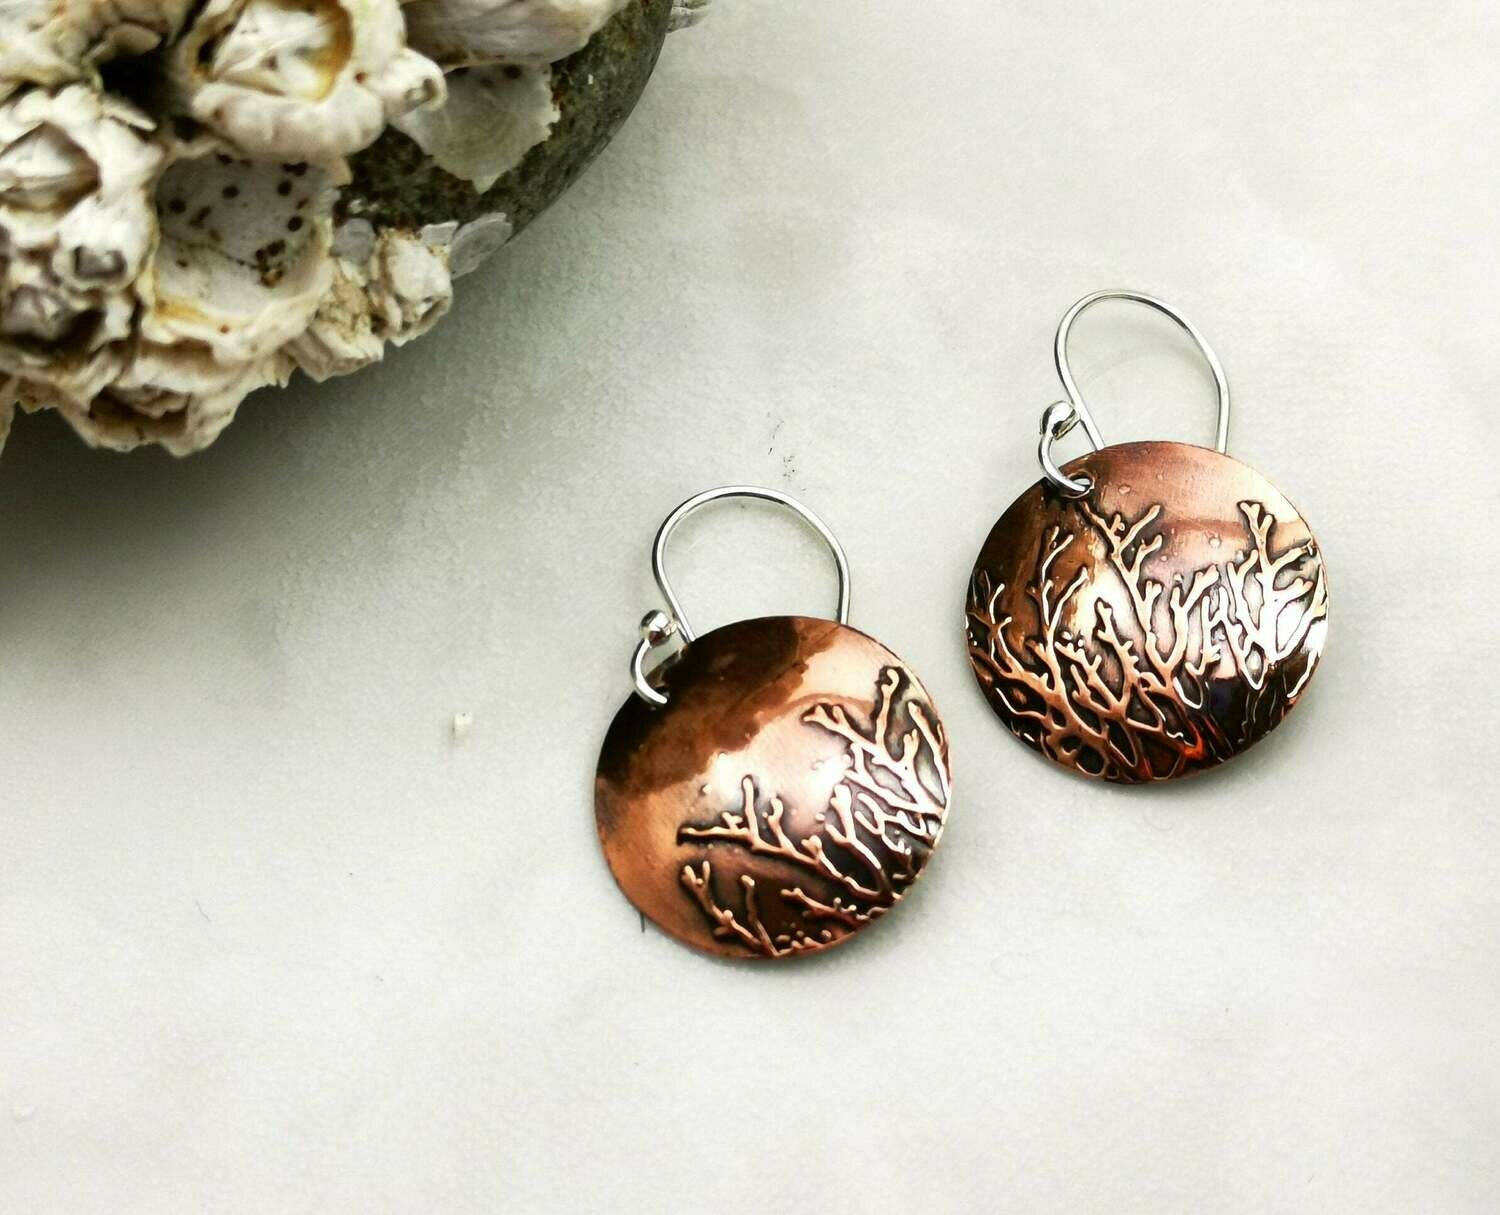 Coral Seaweed Ocean Patterned Copper Earrings